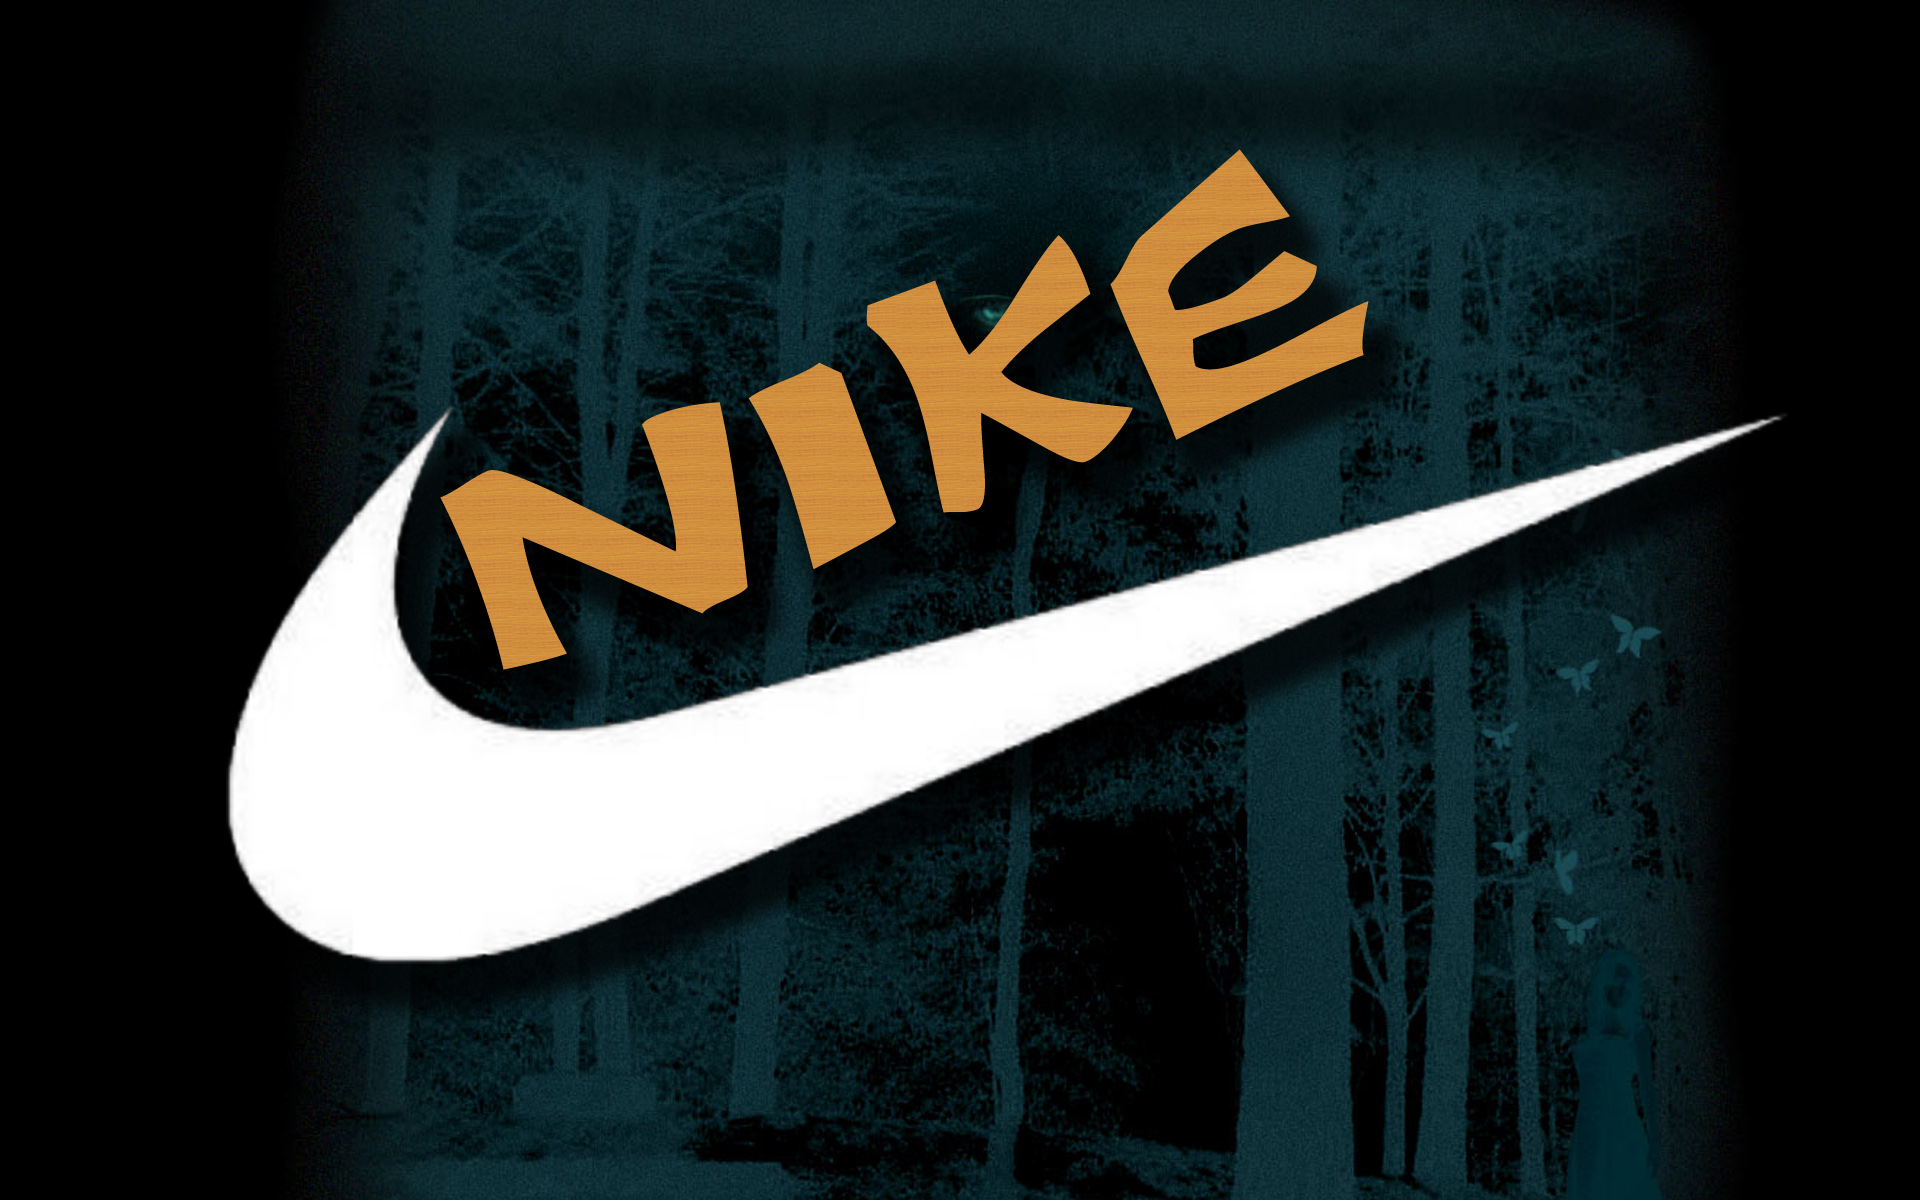 Nike Iphone Wallpaper Pictures  High Resolution Wallpapers  High 1920x1200